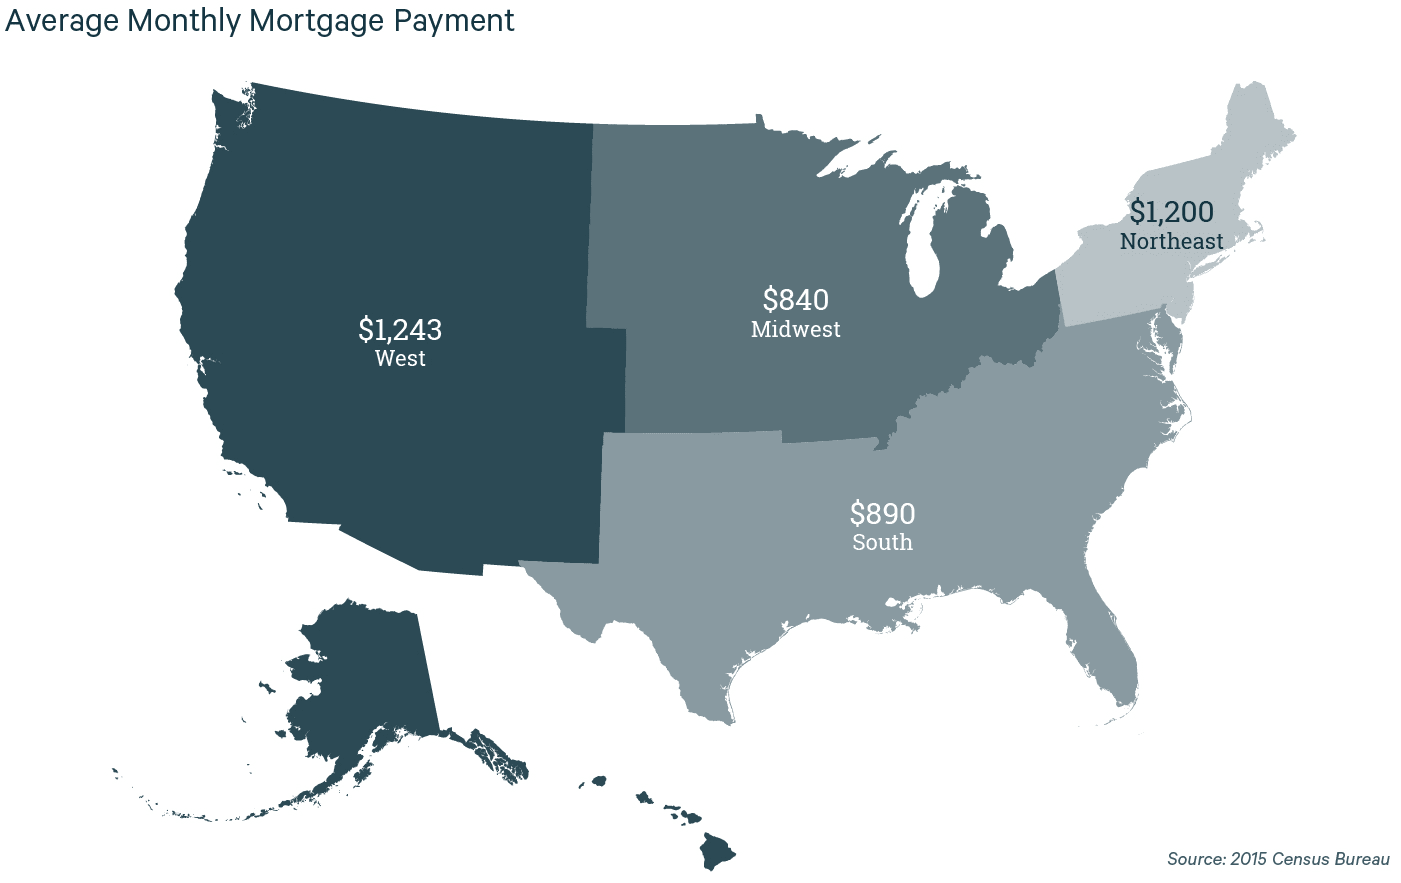 Map of monthly mortgage payments by US Census region